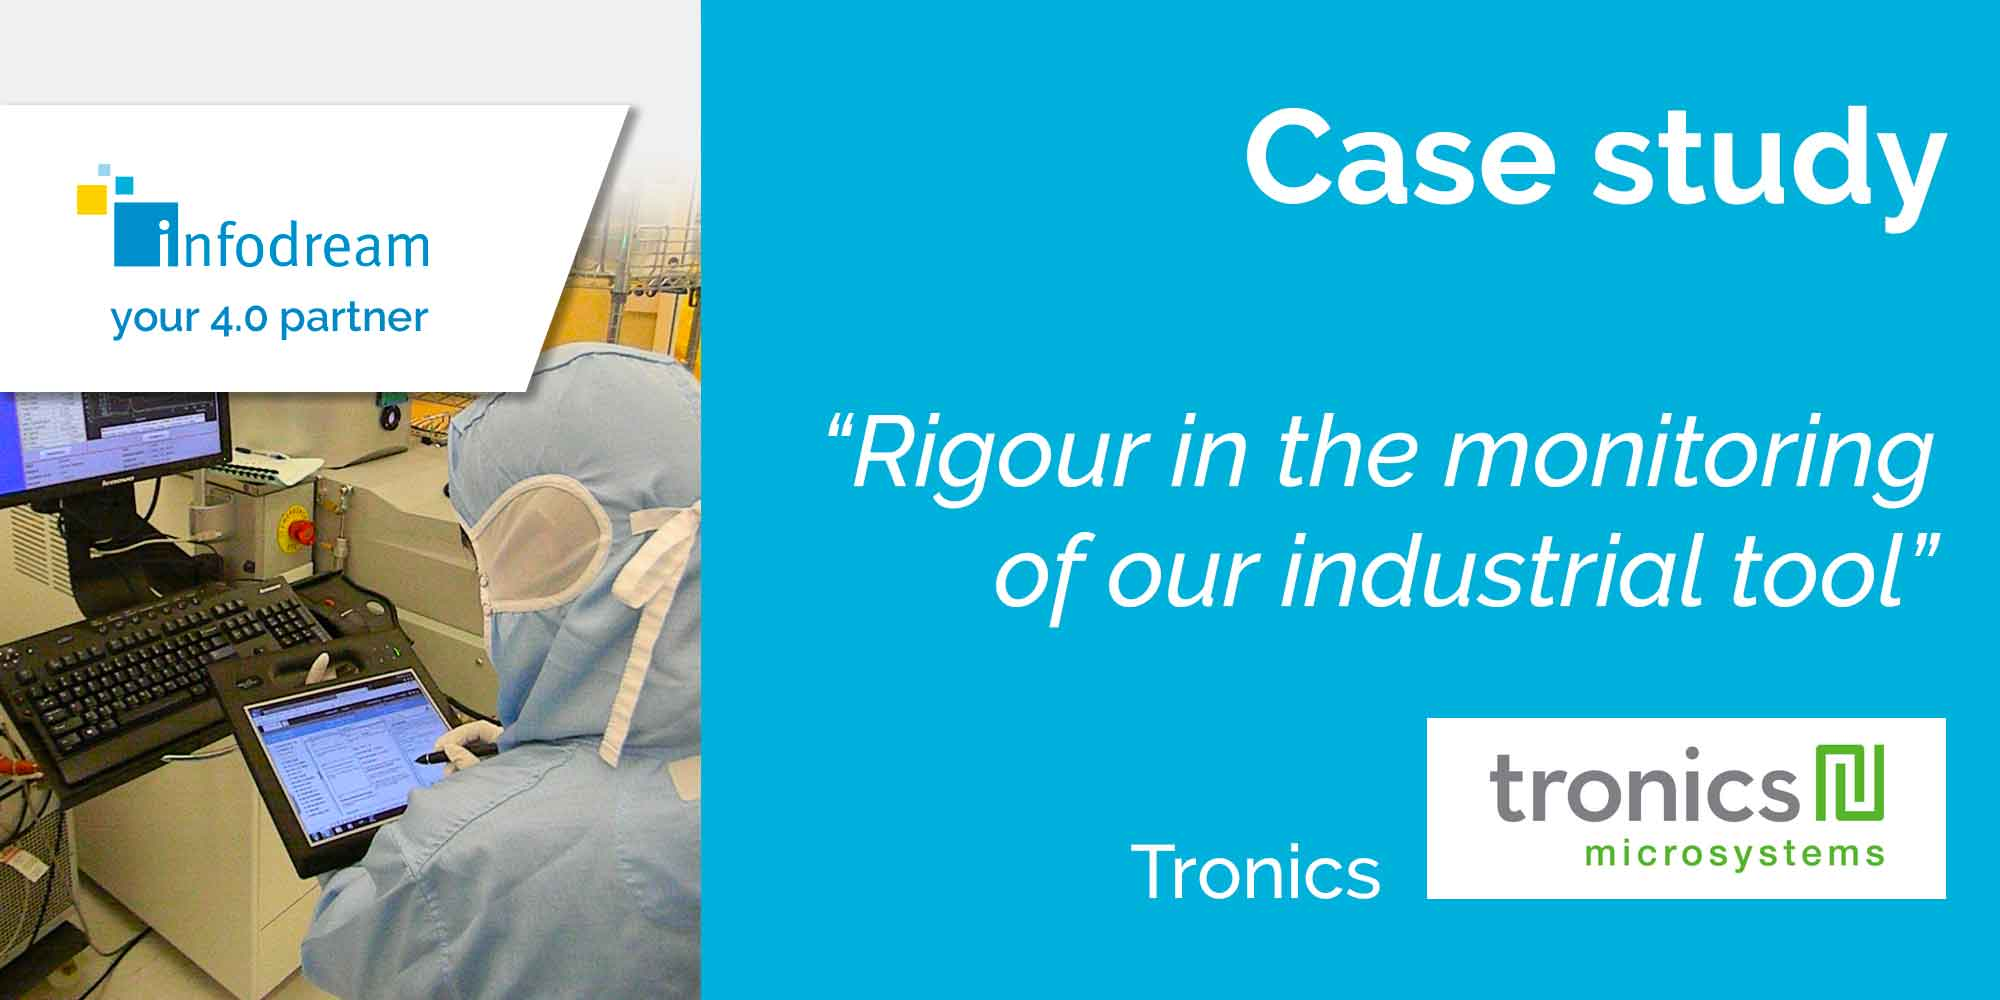 Tronics Brings Rigour To Its Industrial Tool Monitoring With Infodream's MES Qualaxy